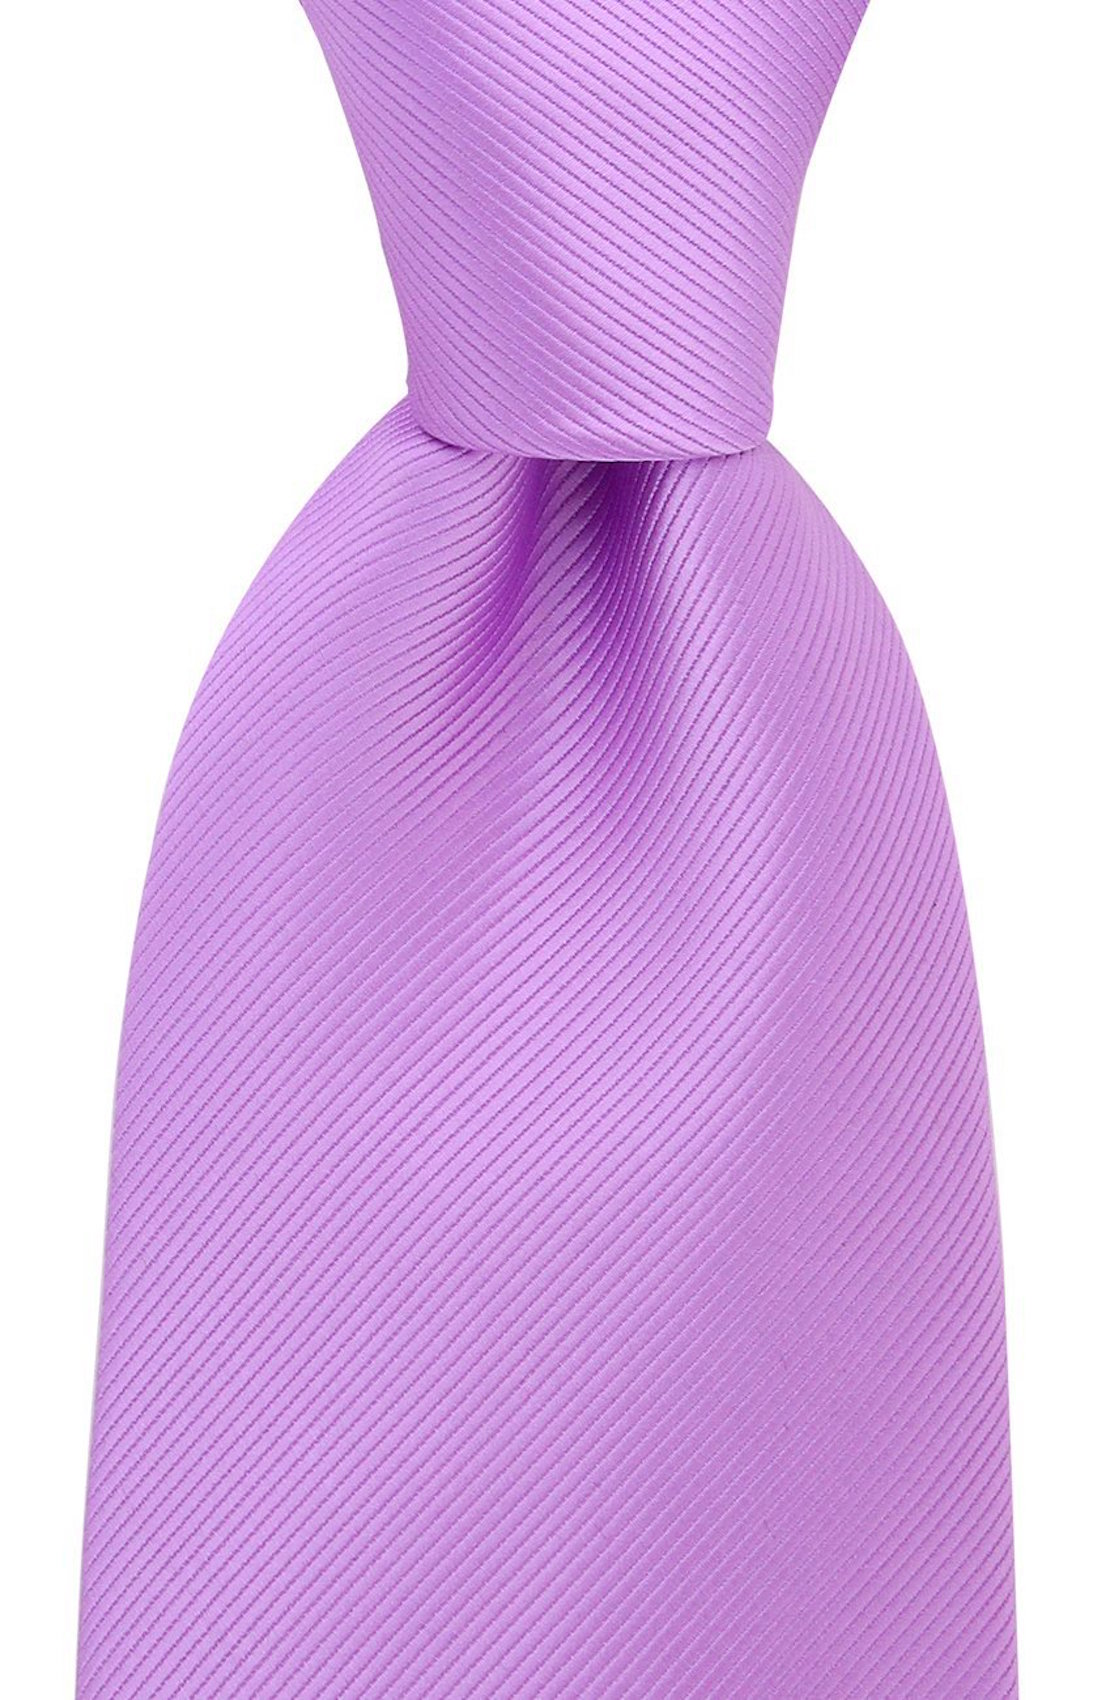 Scott-Allan-Mens-Twill-Striped-Necktie thumbnail 22